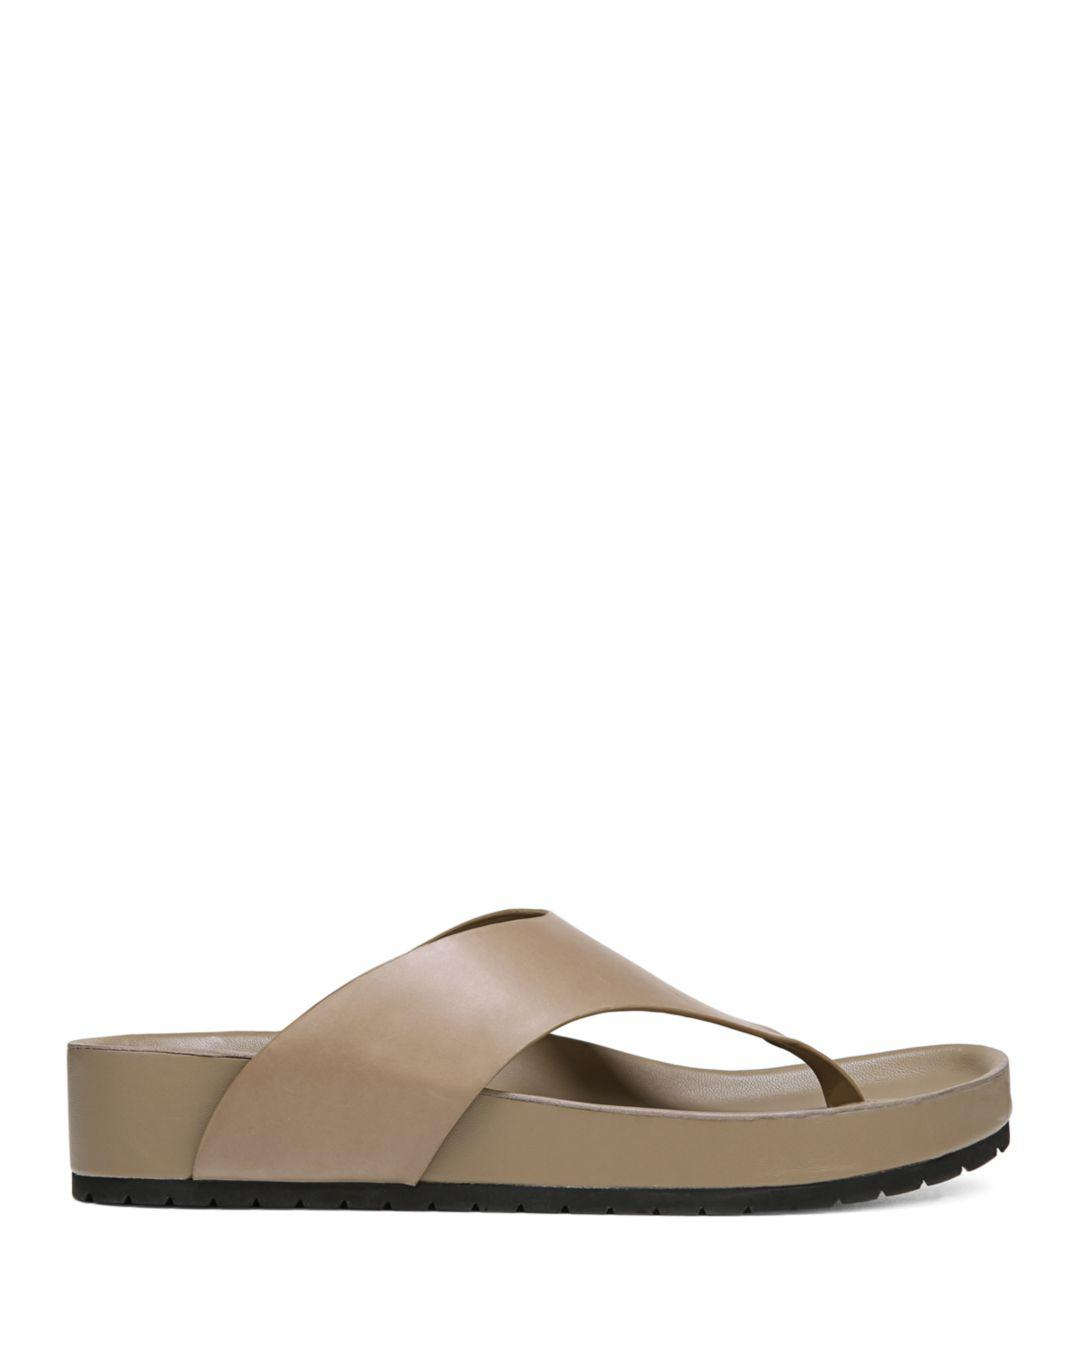 76295789138fee Vince Women s Padma Leather Thong Sandals in Brown - Lyst